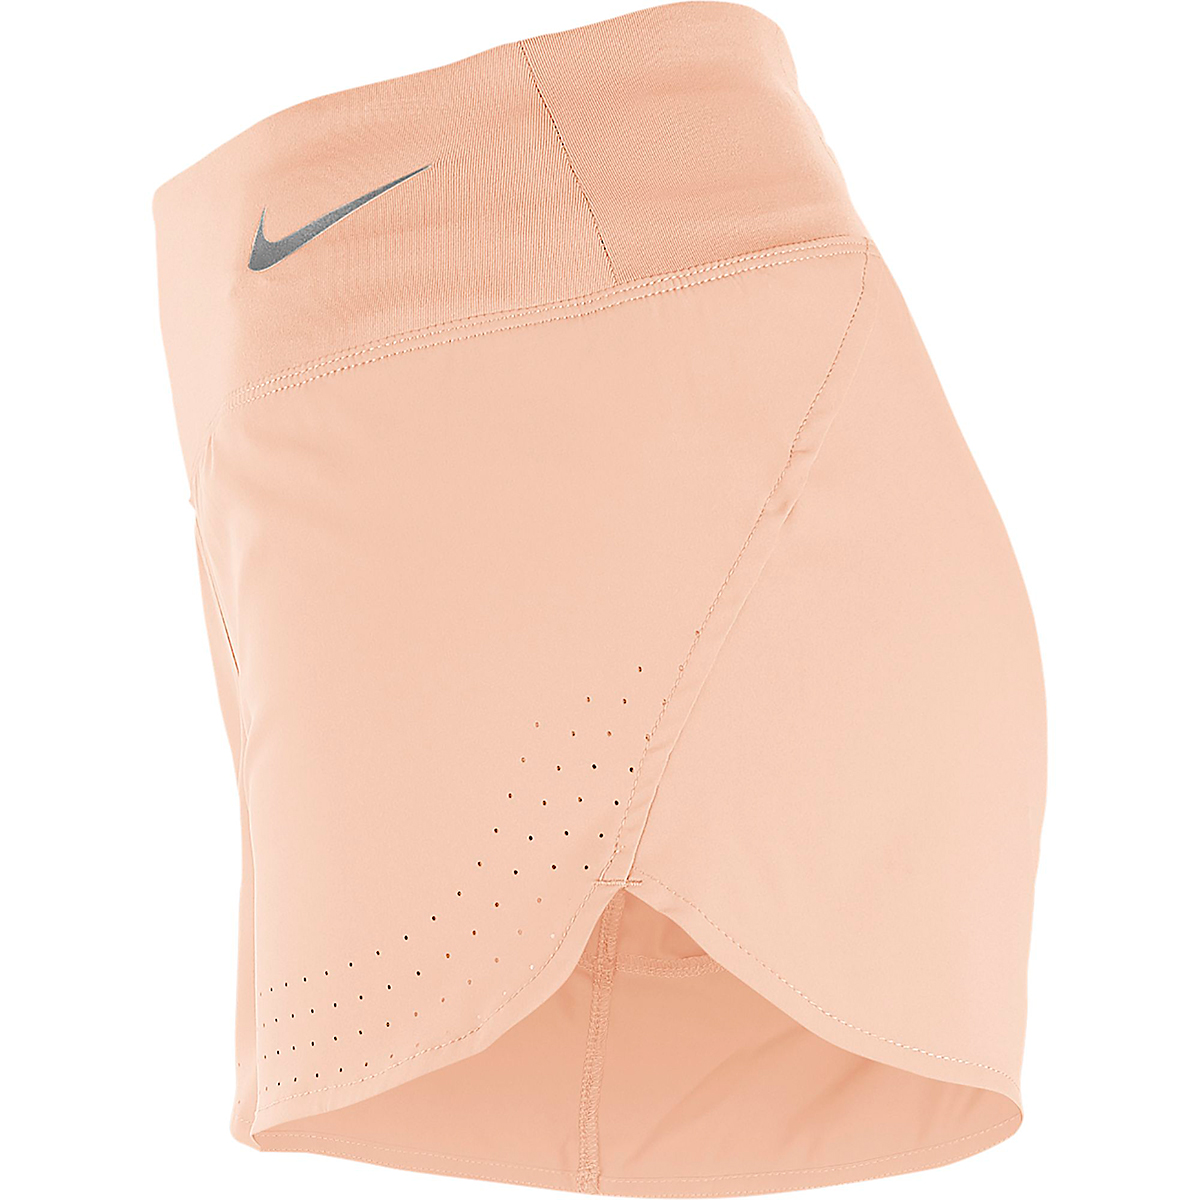 Women's Nike Eclipse Short 3in - Color: Washed Coral - Size: XS, Washed Coral, large, image 2